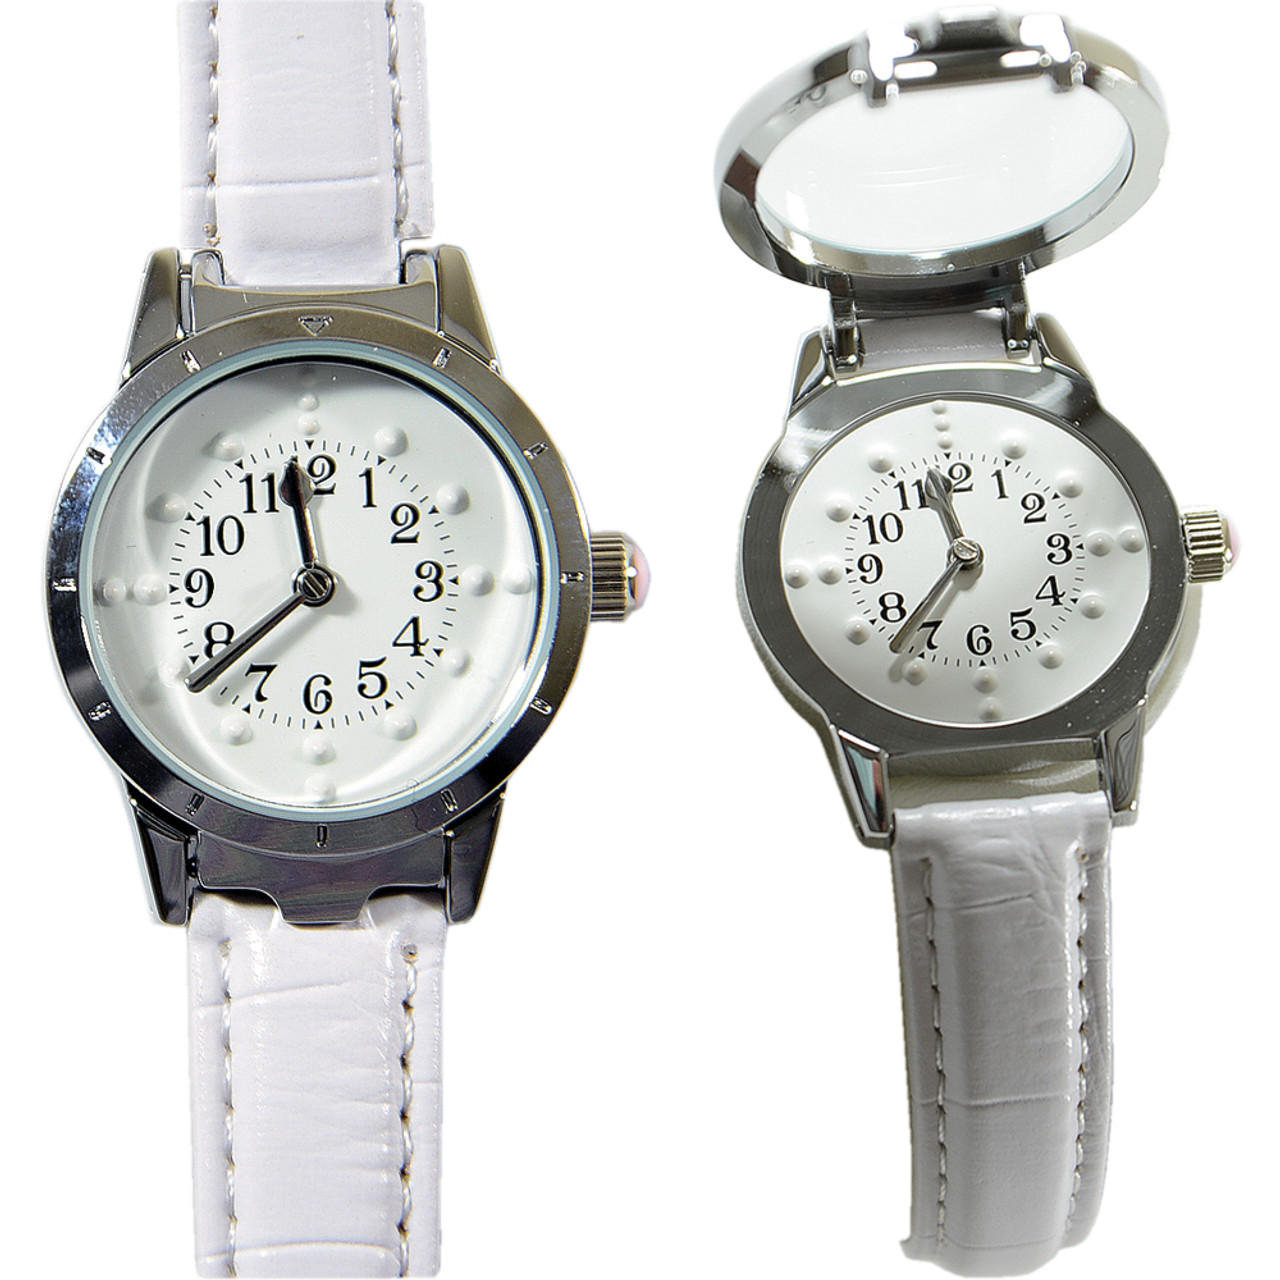 Ladies' Braille Watch Silver Case with White Face and White Leather Band